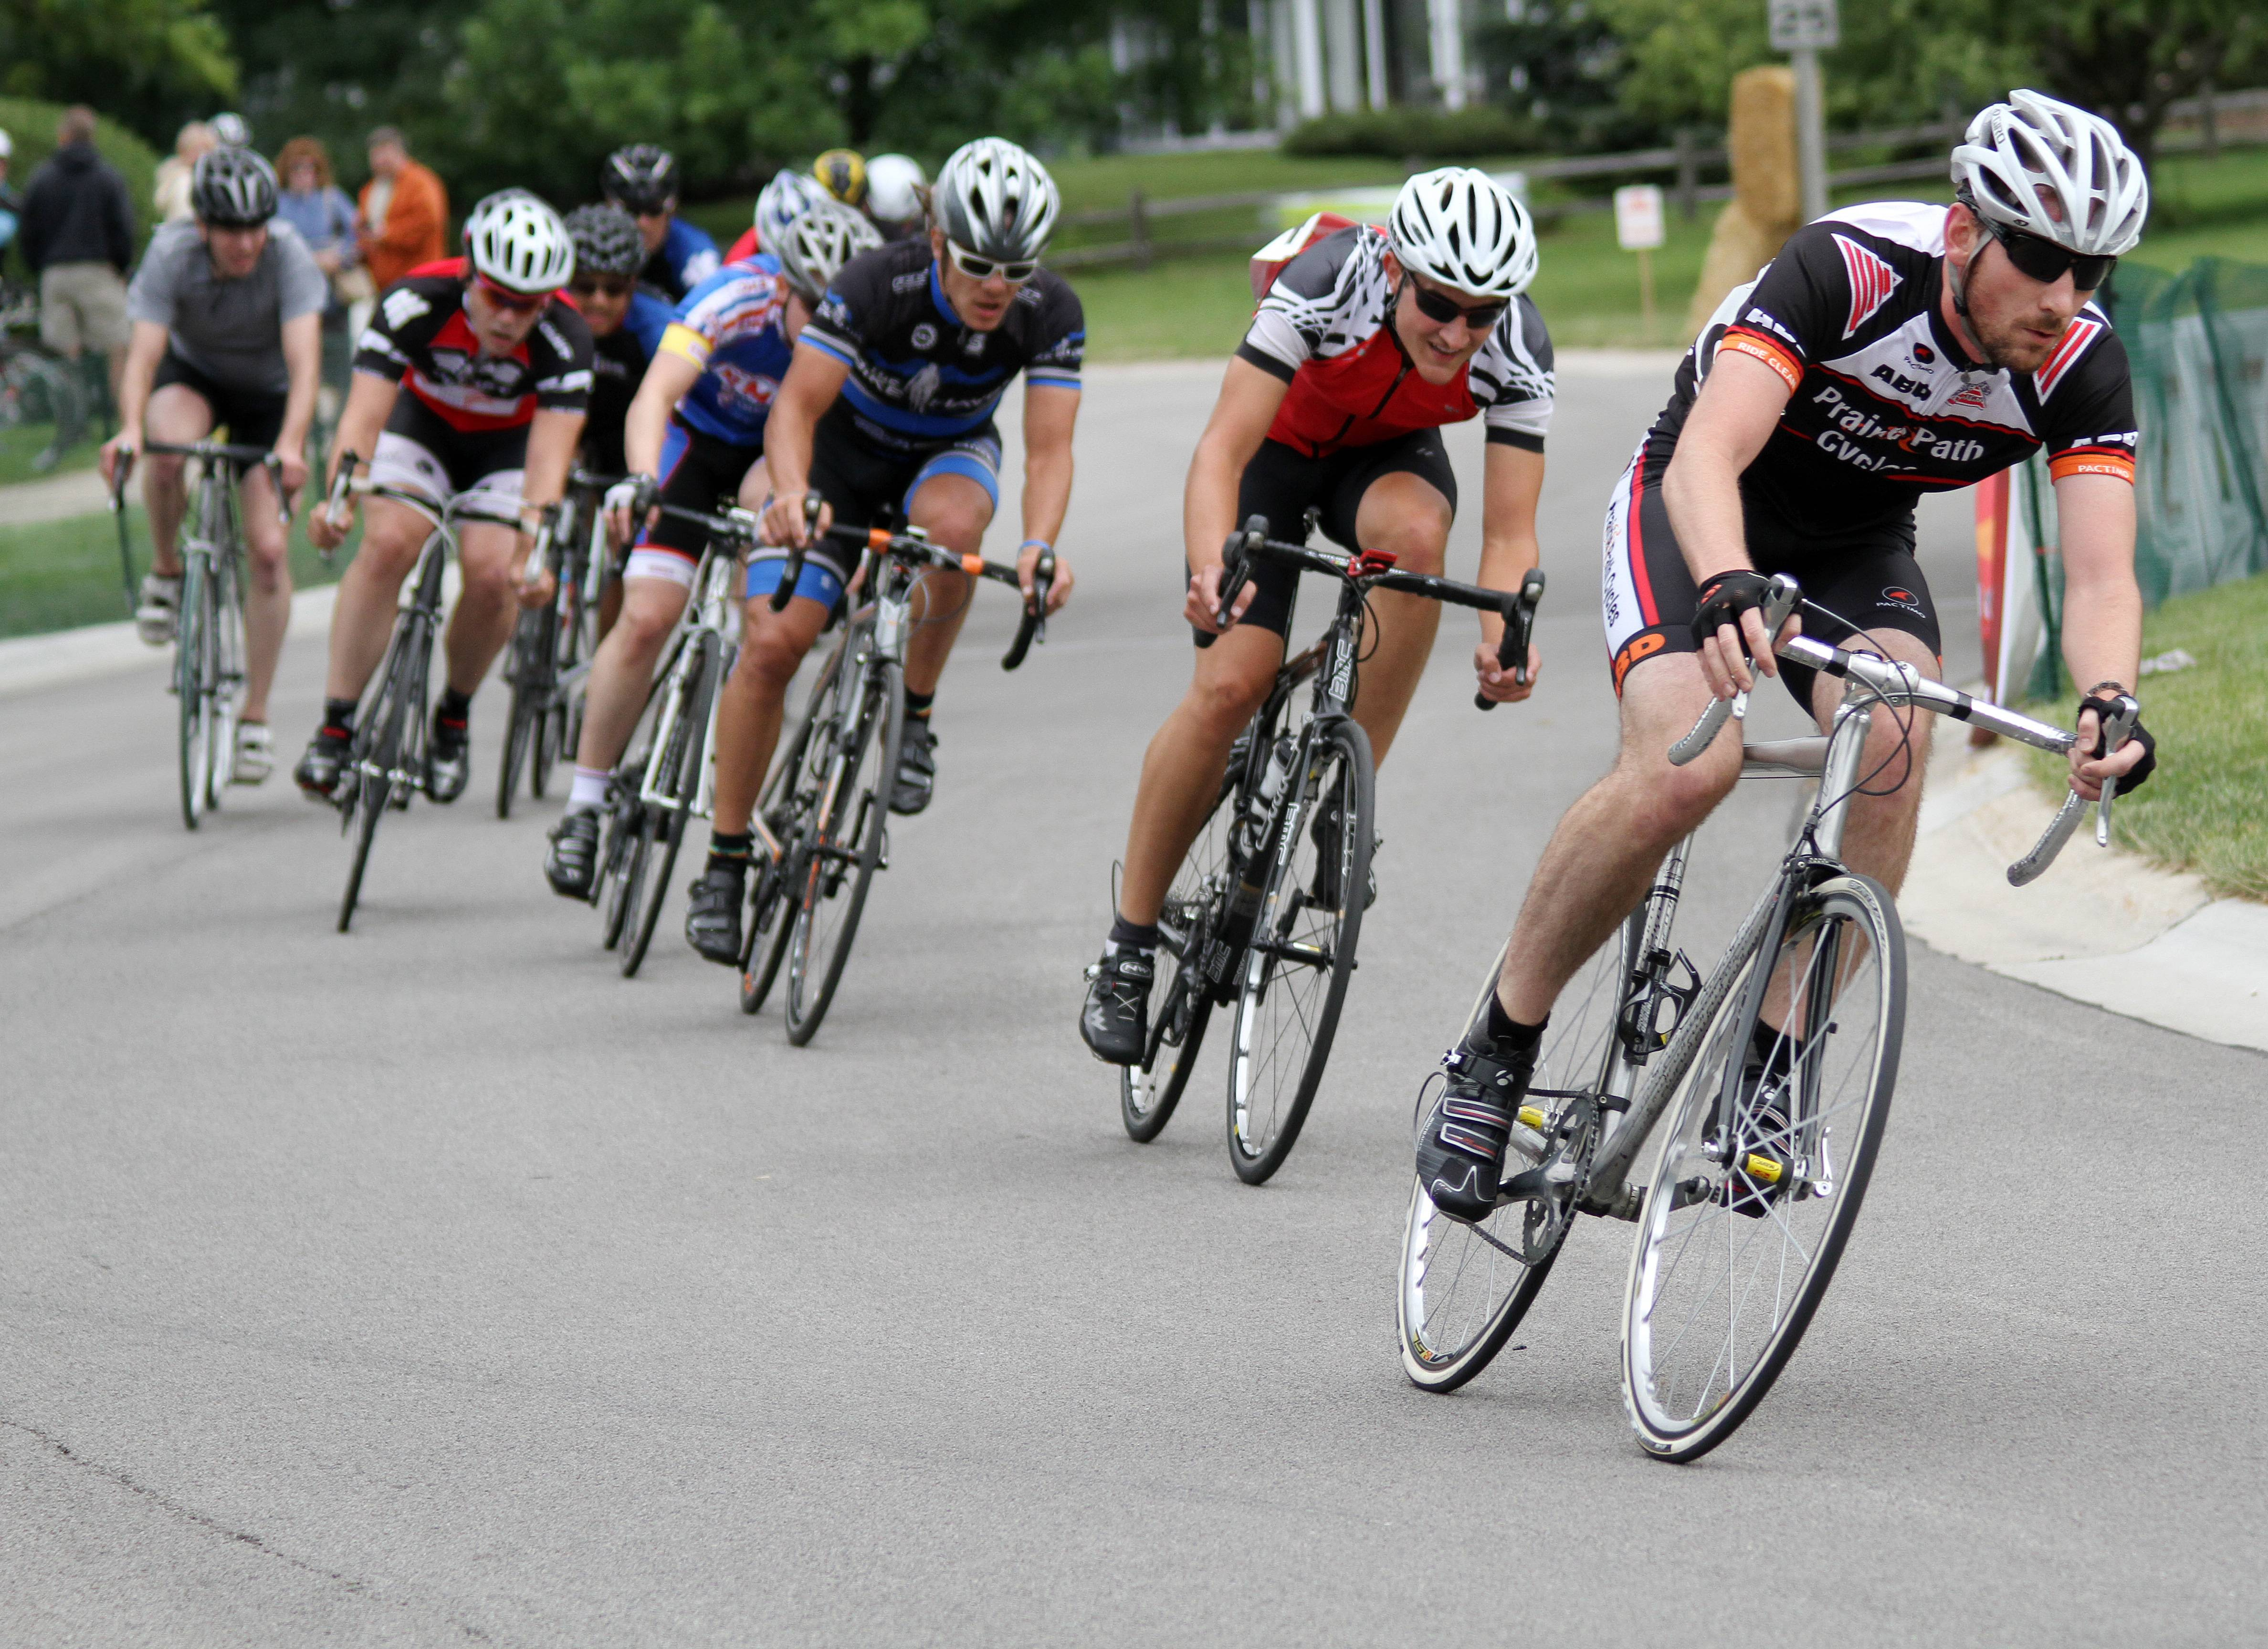 The annual Winfield Criterium returns Saturday with a single day of bicycle races. The event begins at noon at Oakwood Park on the north side of the village.